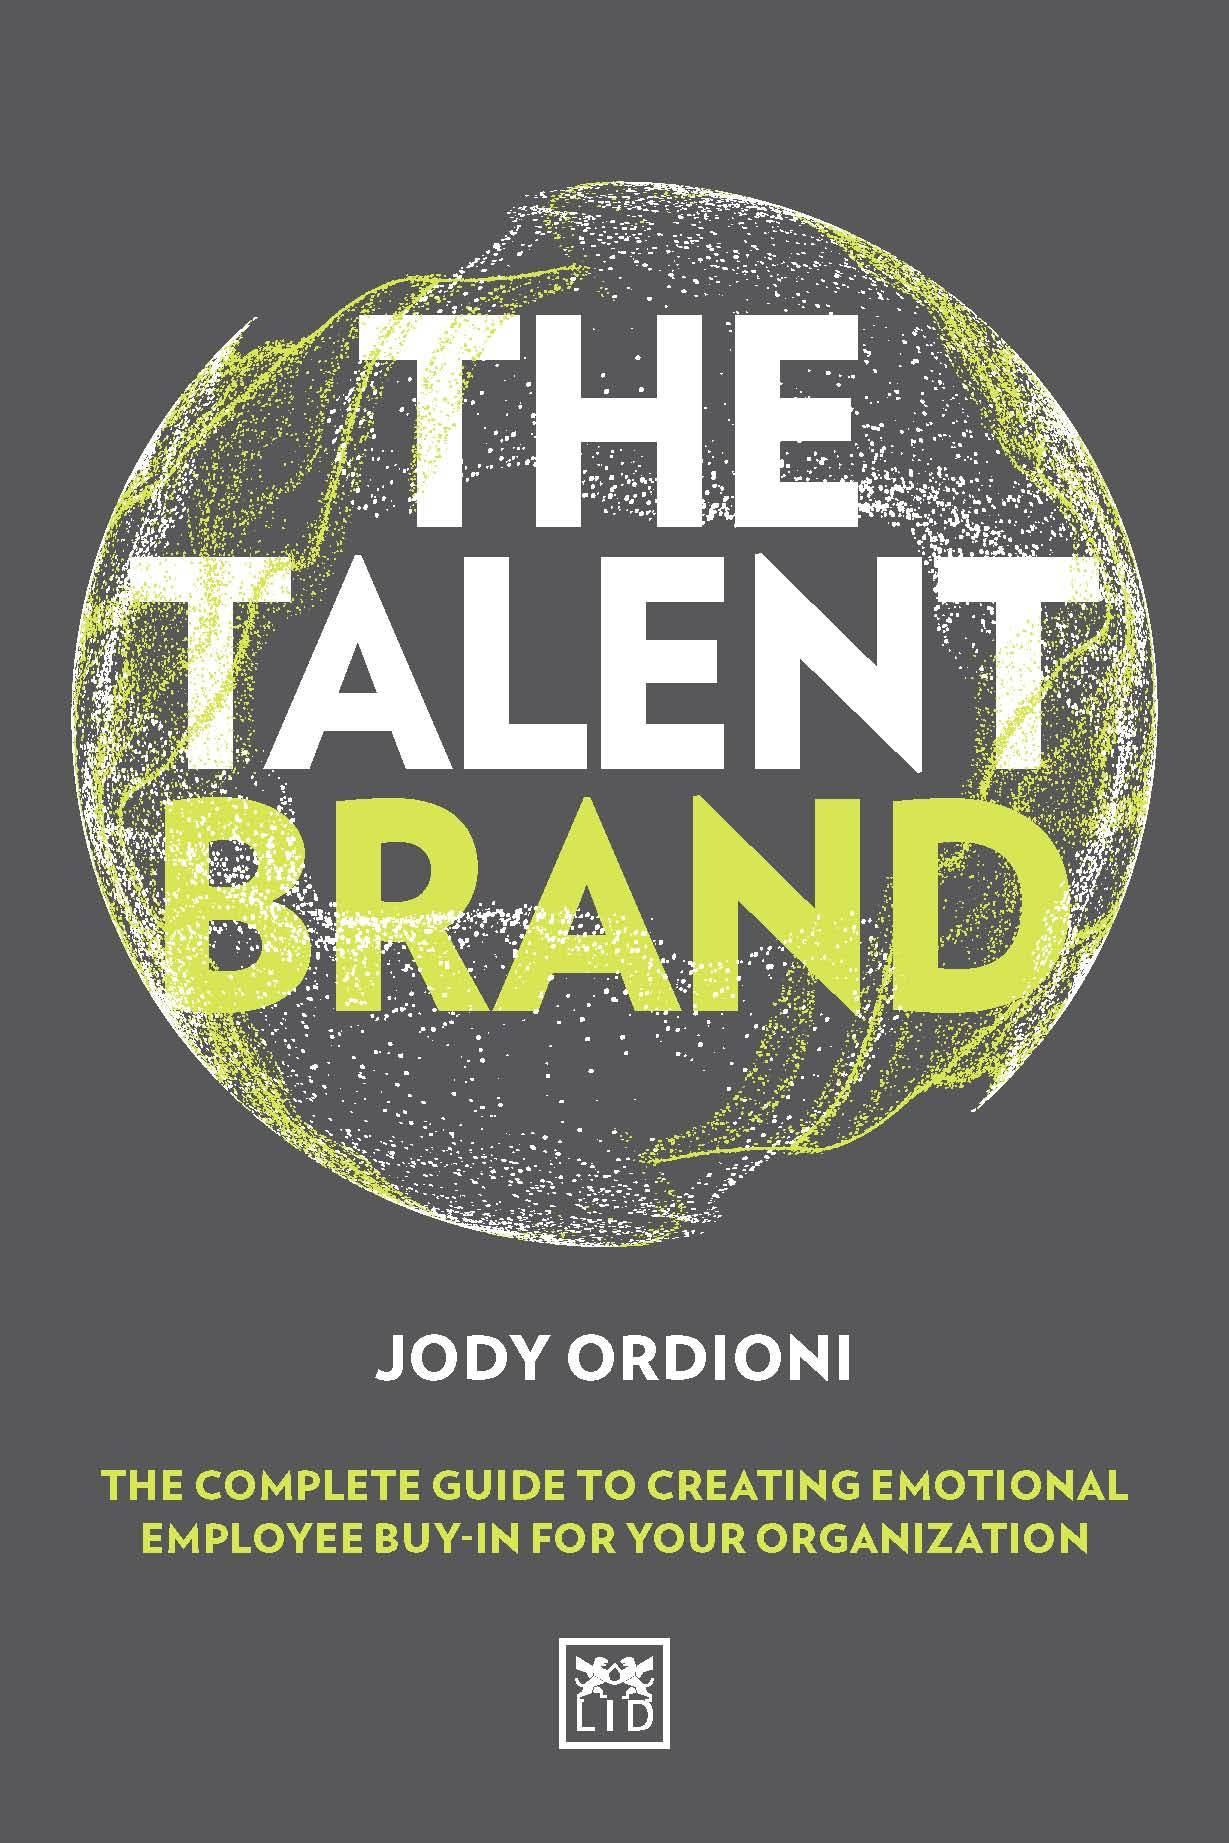 The Talent Brand: Build your Network, Amplify Engagement, Build your Business.